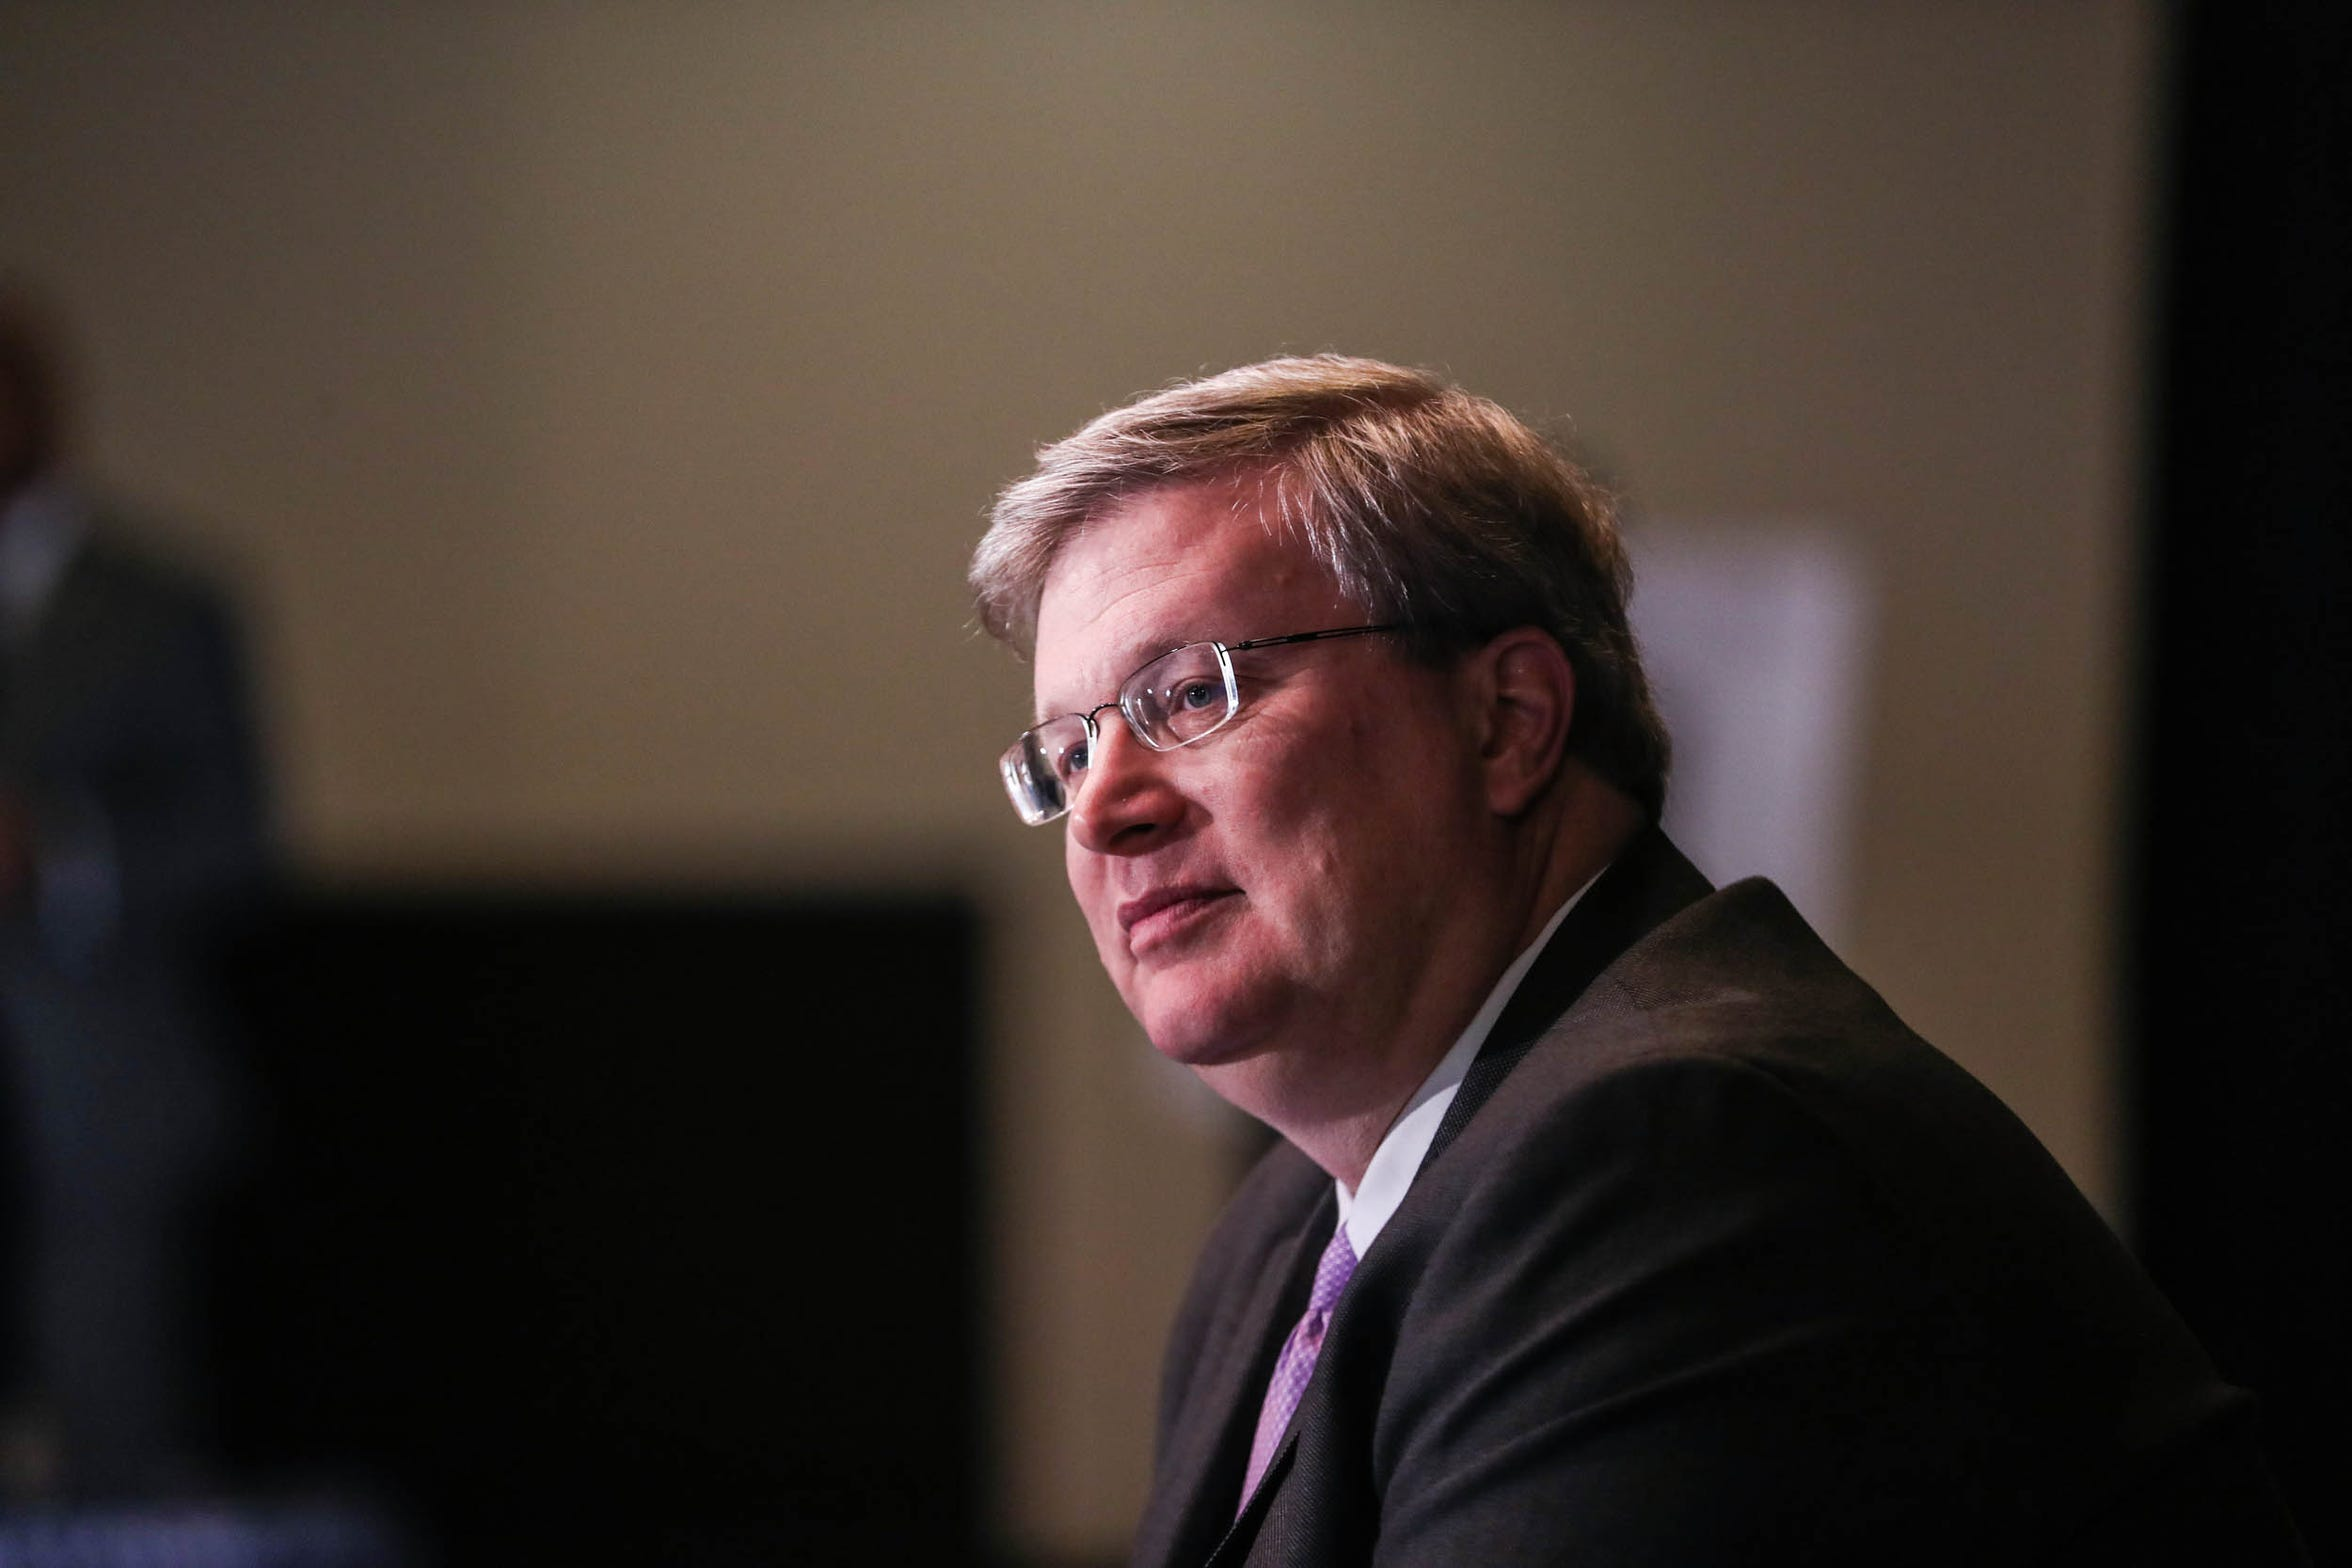 Memphis Mayor Jim Strickland requested more than $48 million from the business community to attract new police hires and to award bonuses to cops who remain on the force.